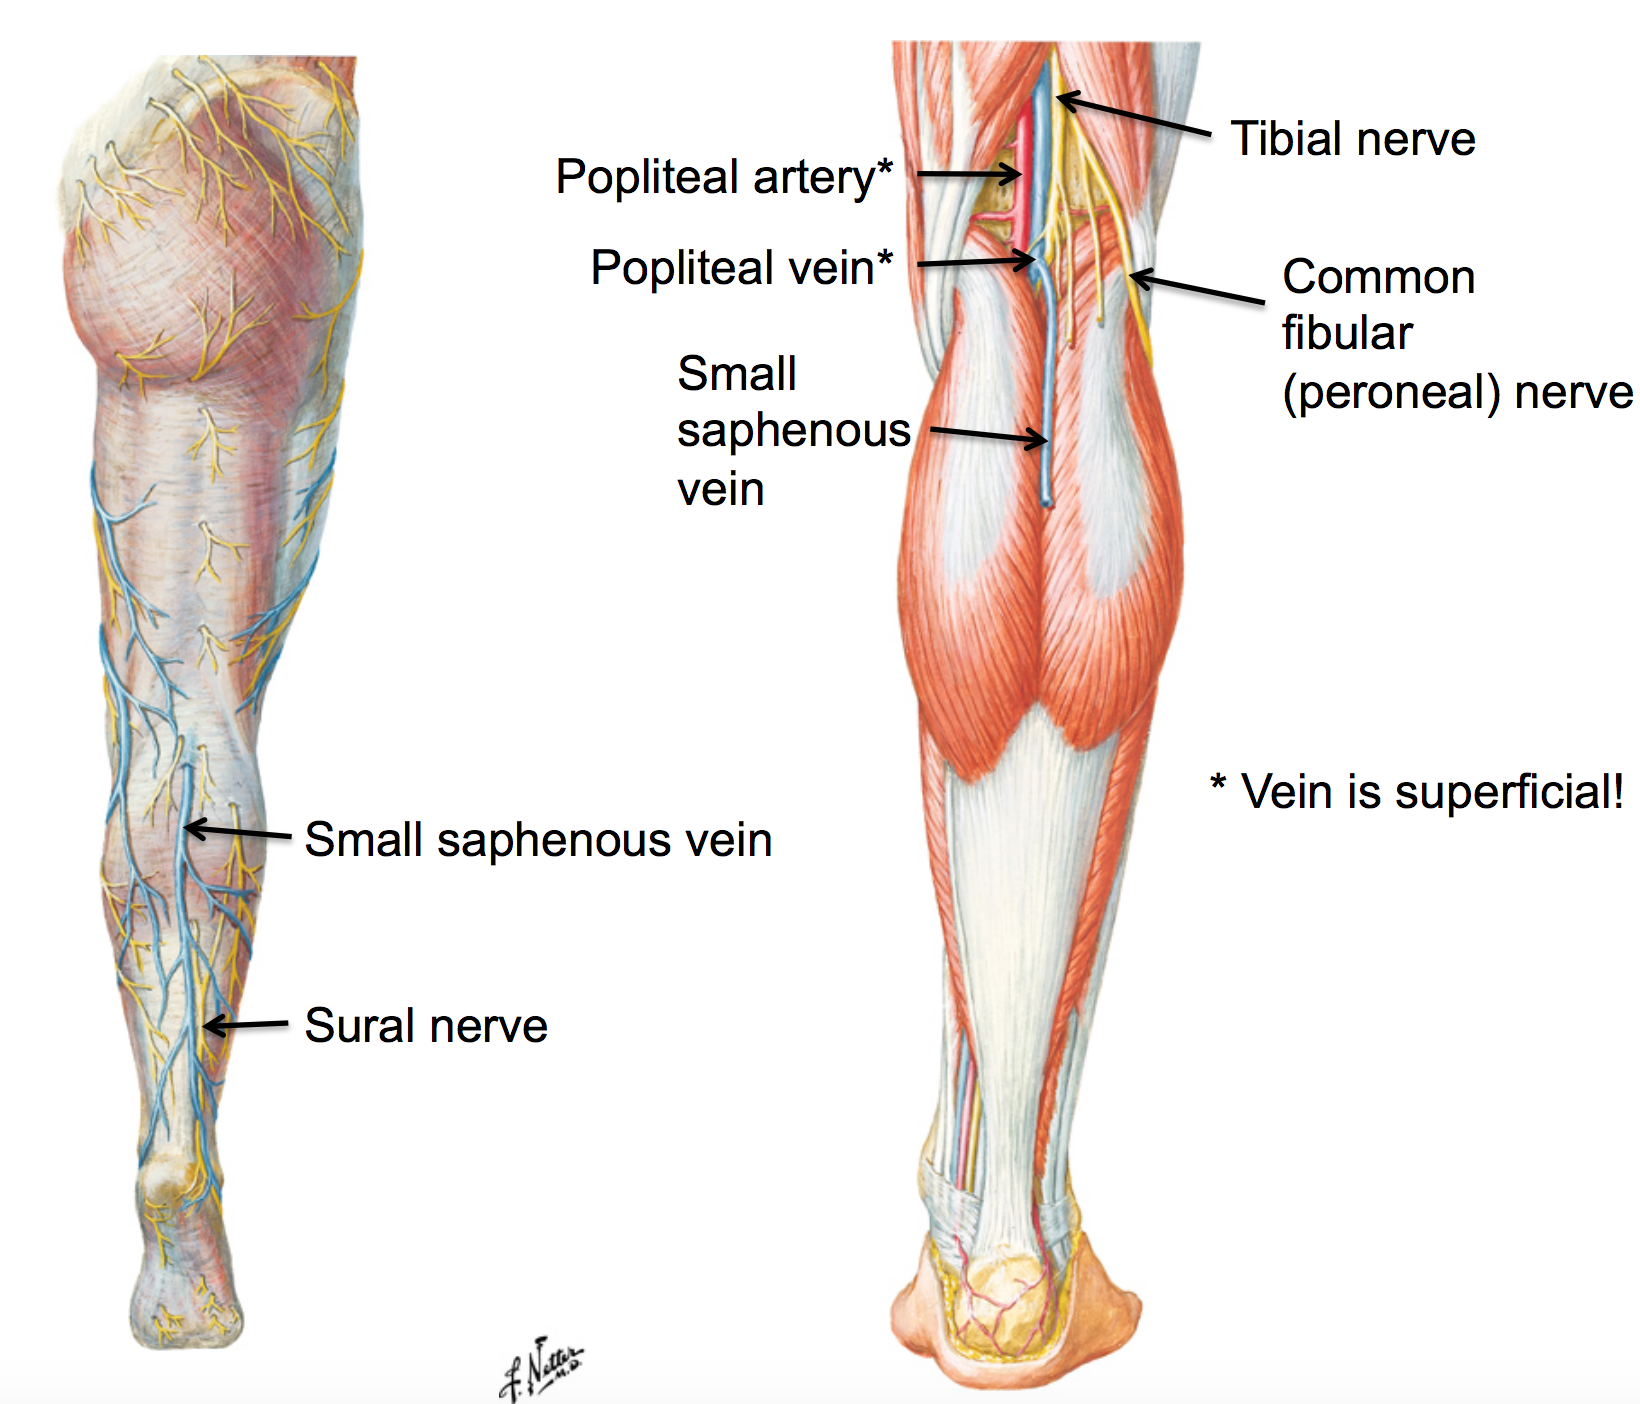 image small_saphenous_vein for definition side of card | Areas of ...